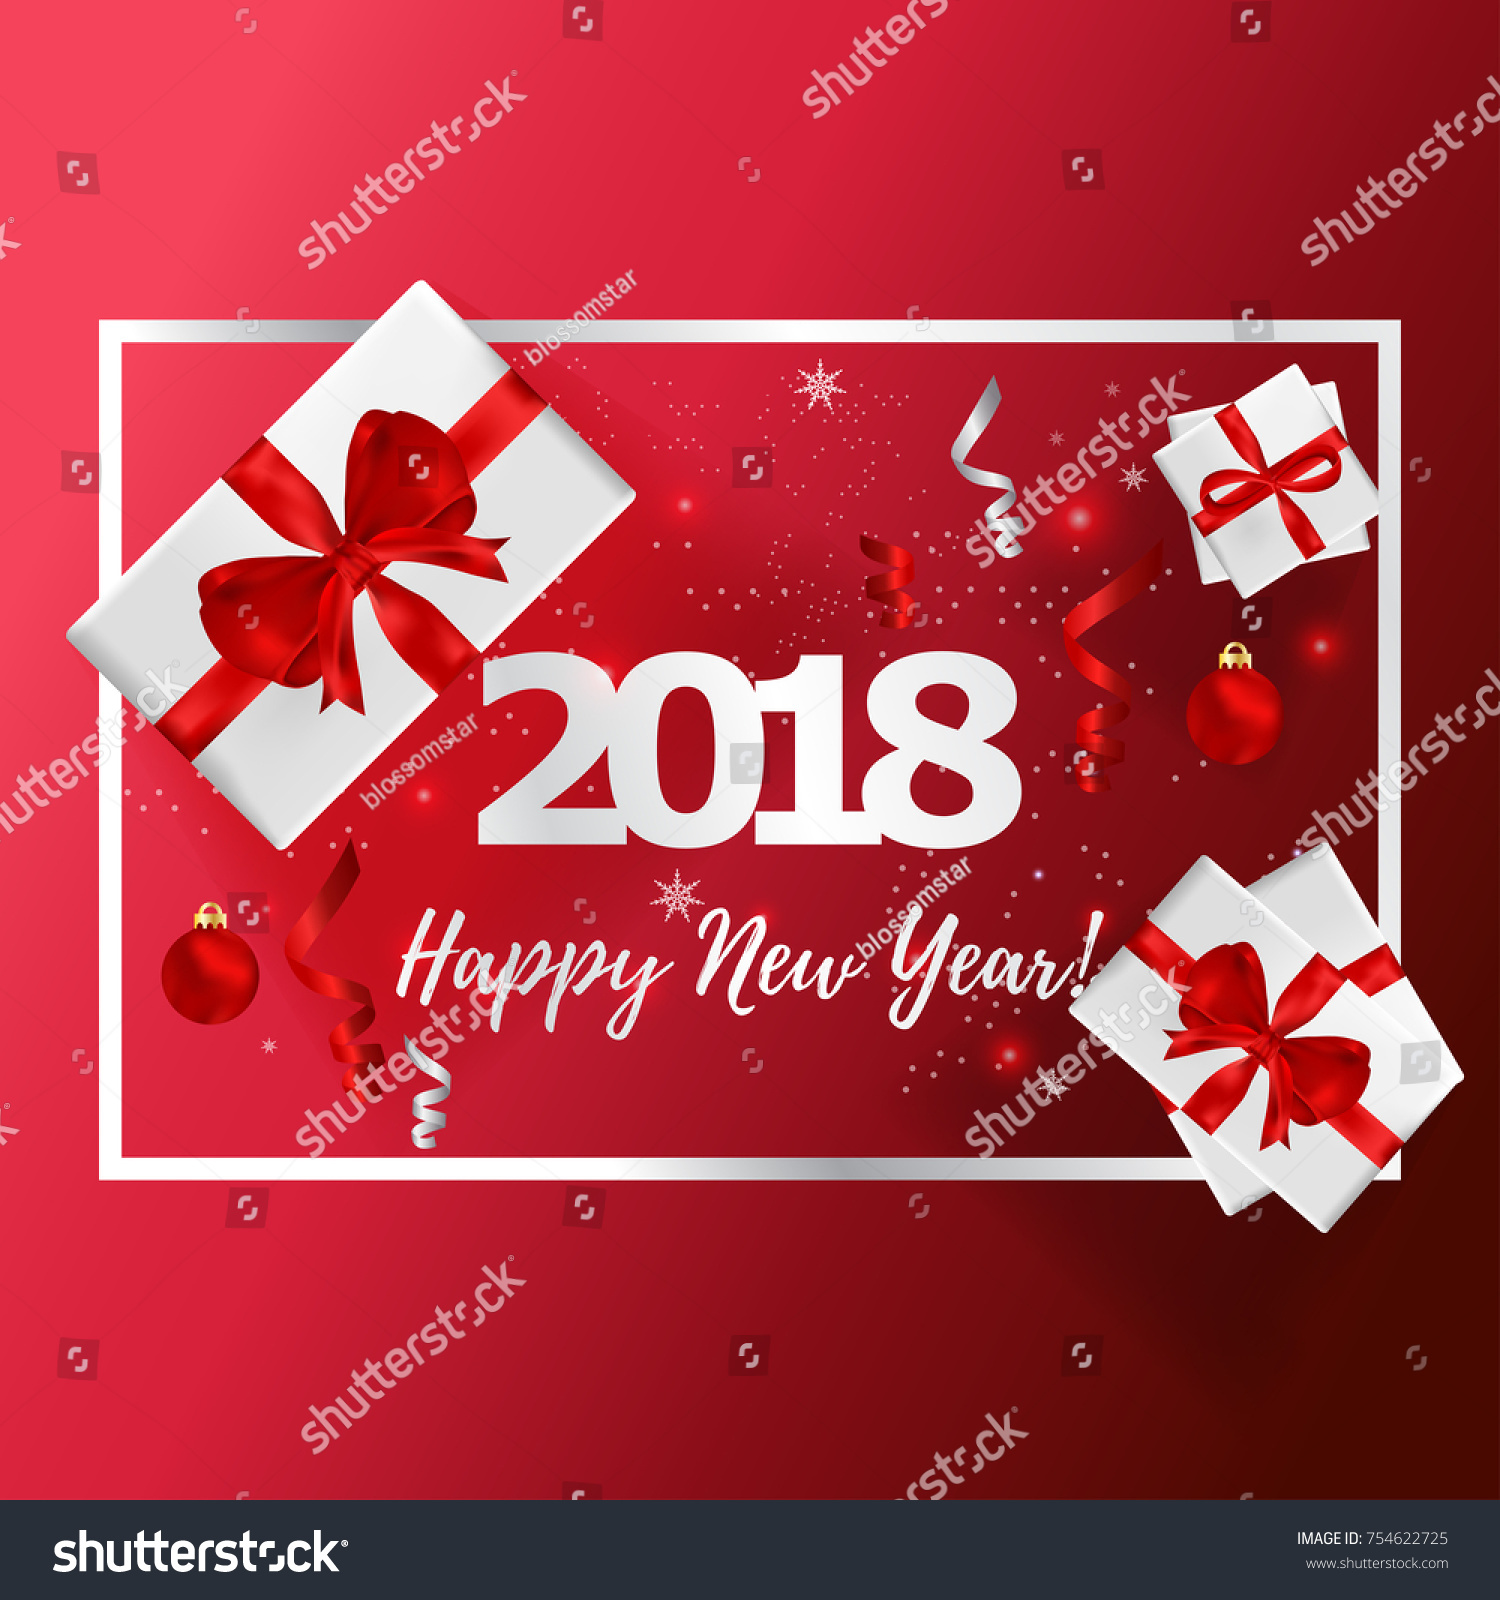 New years greeting card vector illustration stock vector 754622725 new years greeting card vector illustration happy new year 2018 on red background for greeting kristyandbryce Images